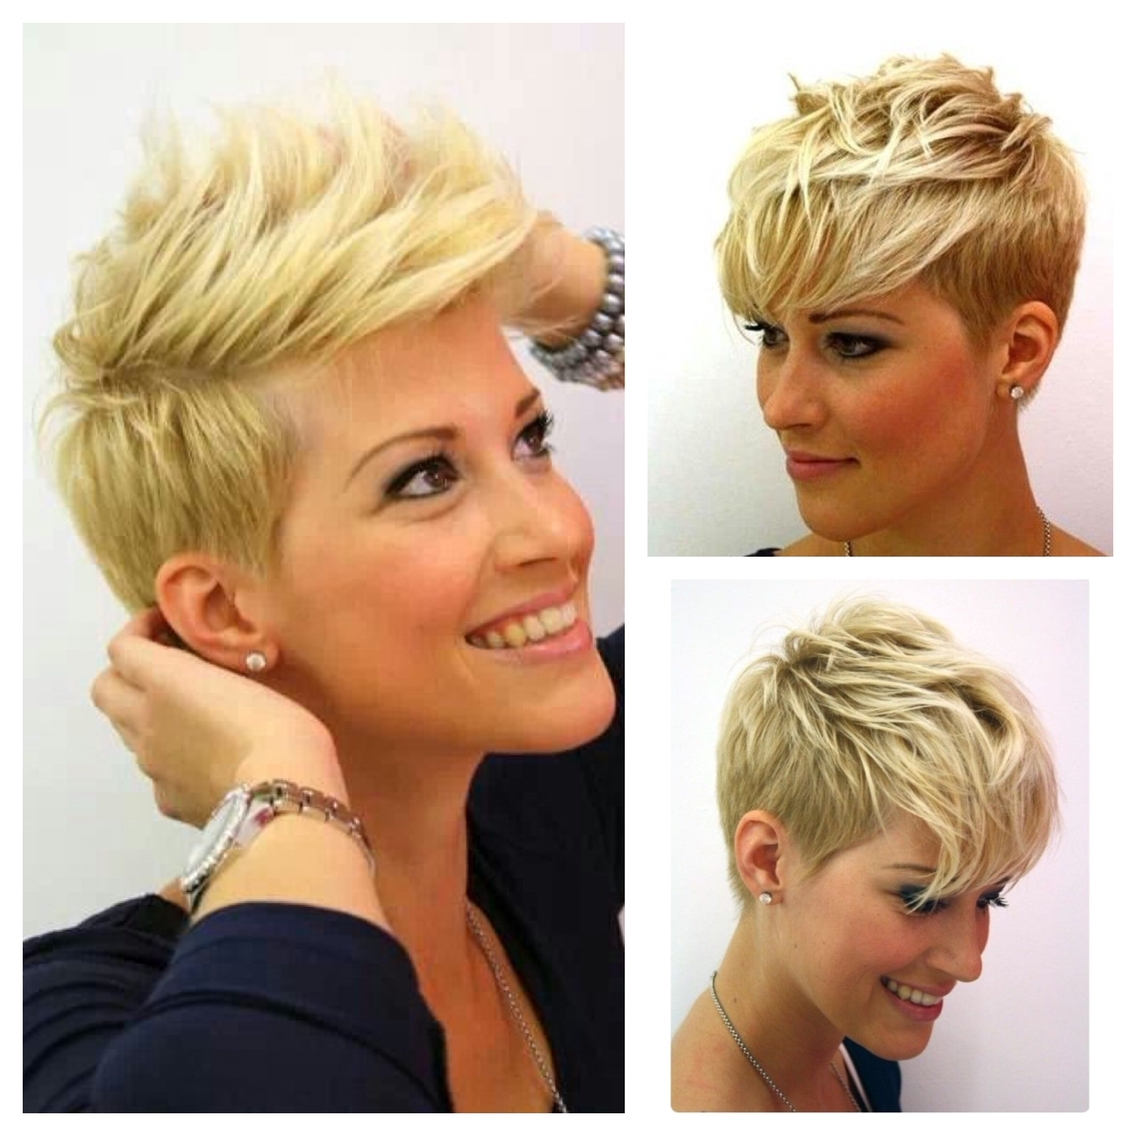 Short Hairstyles : Short Layered Pixie Cut: Fine Hair Tips & Trik In Most Recent Textured Pixie Hairstyles (View 12 of 15)